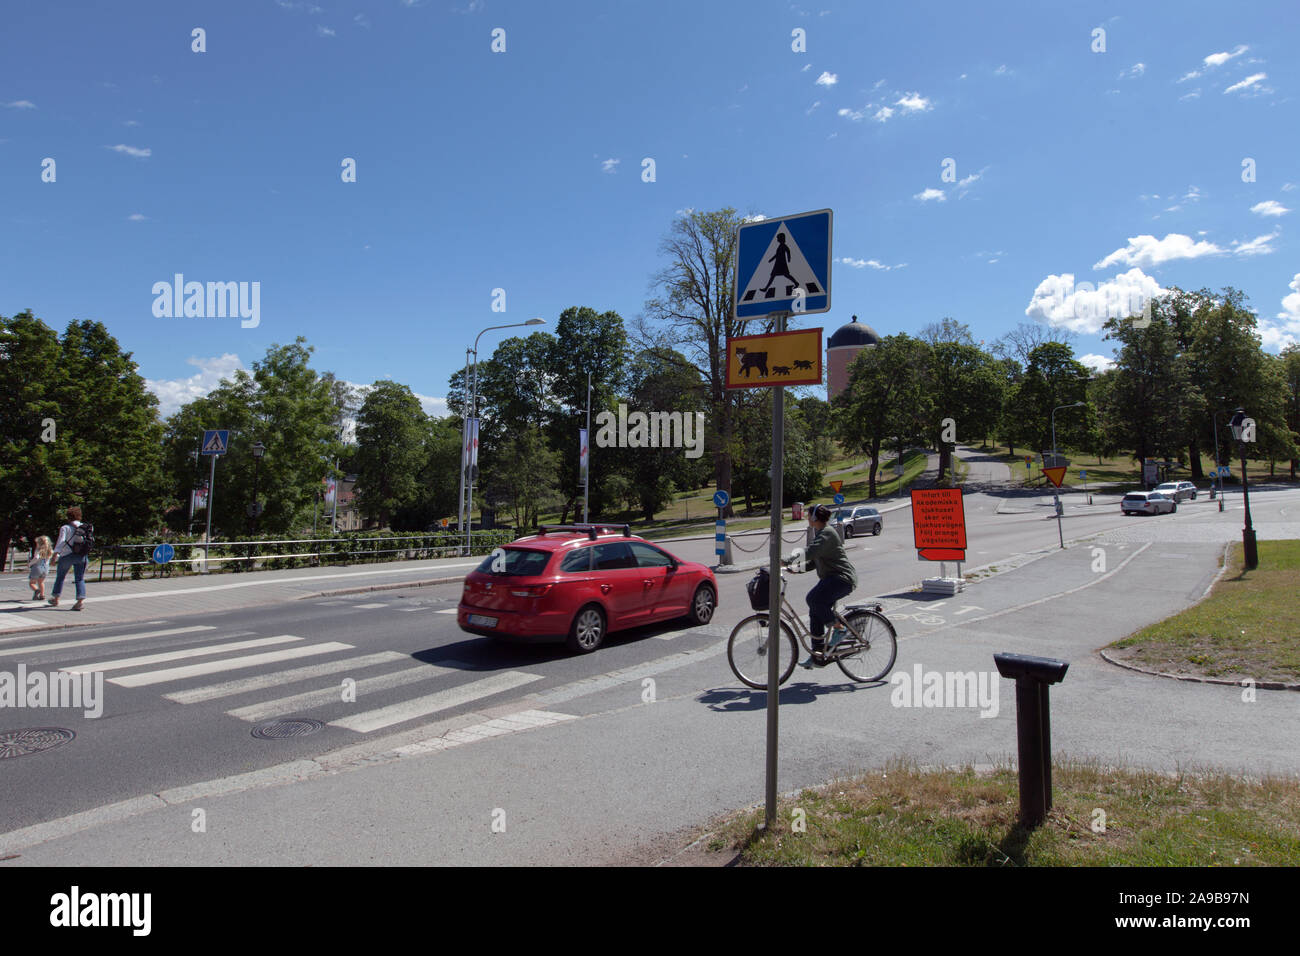 UPPSALA, SWEDEN ON JULY 03, 2019. View of signs and zebra crossing outside Carolina Rediviva. Unidentified persons. Editorial Stock Photo